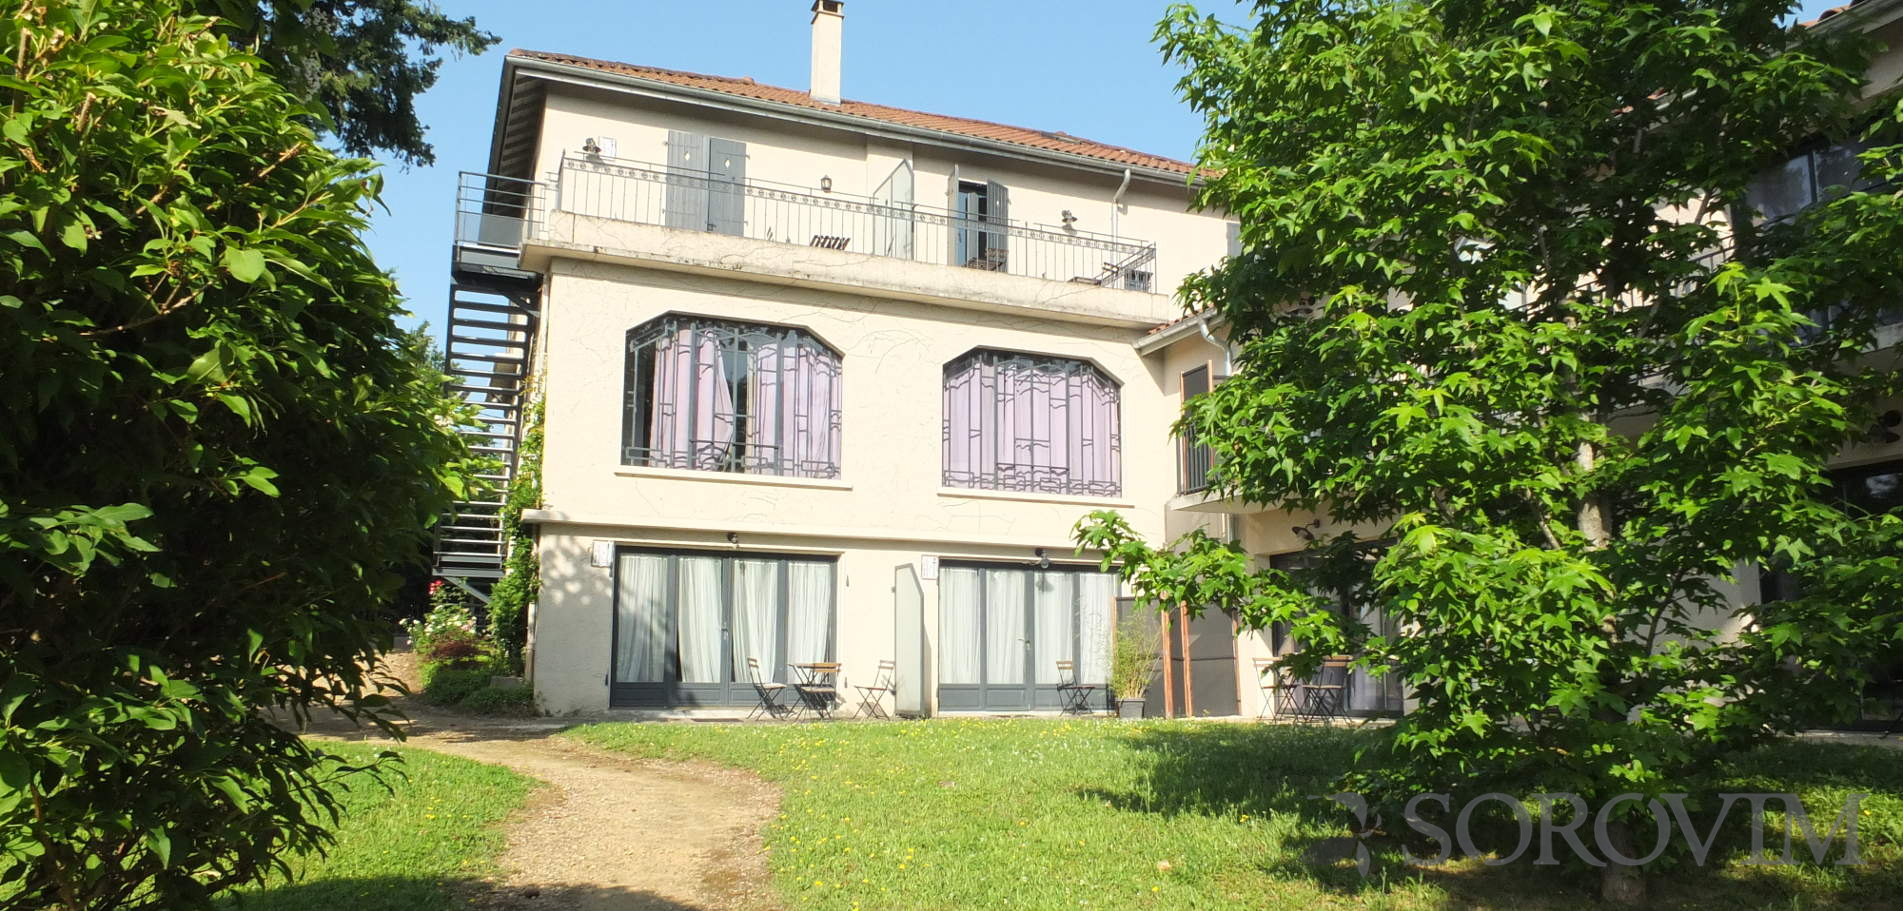 Vente appartement 55 m² - Ecully